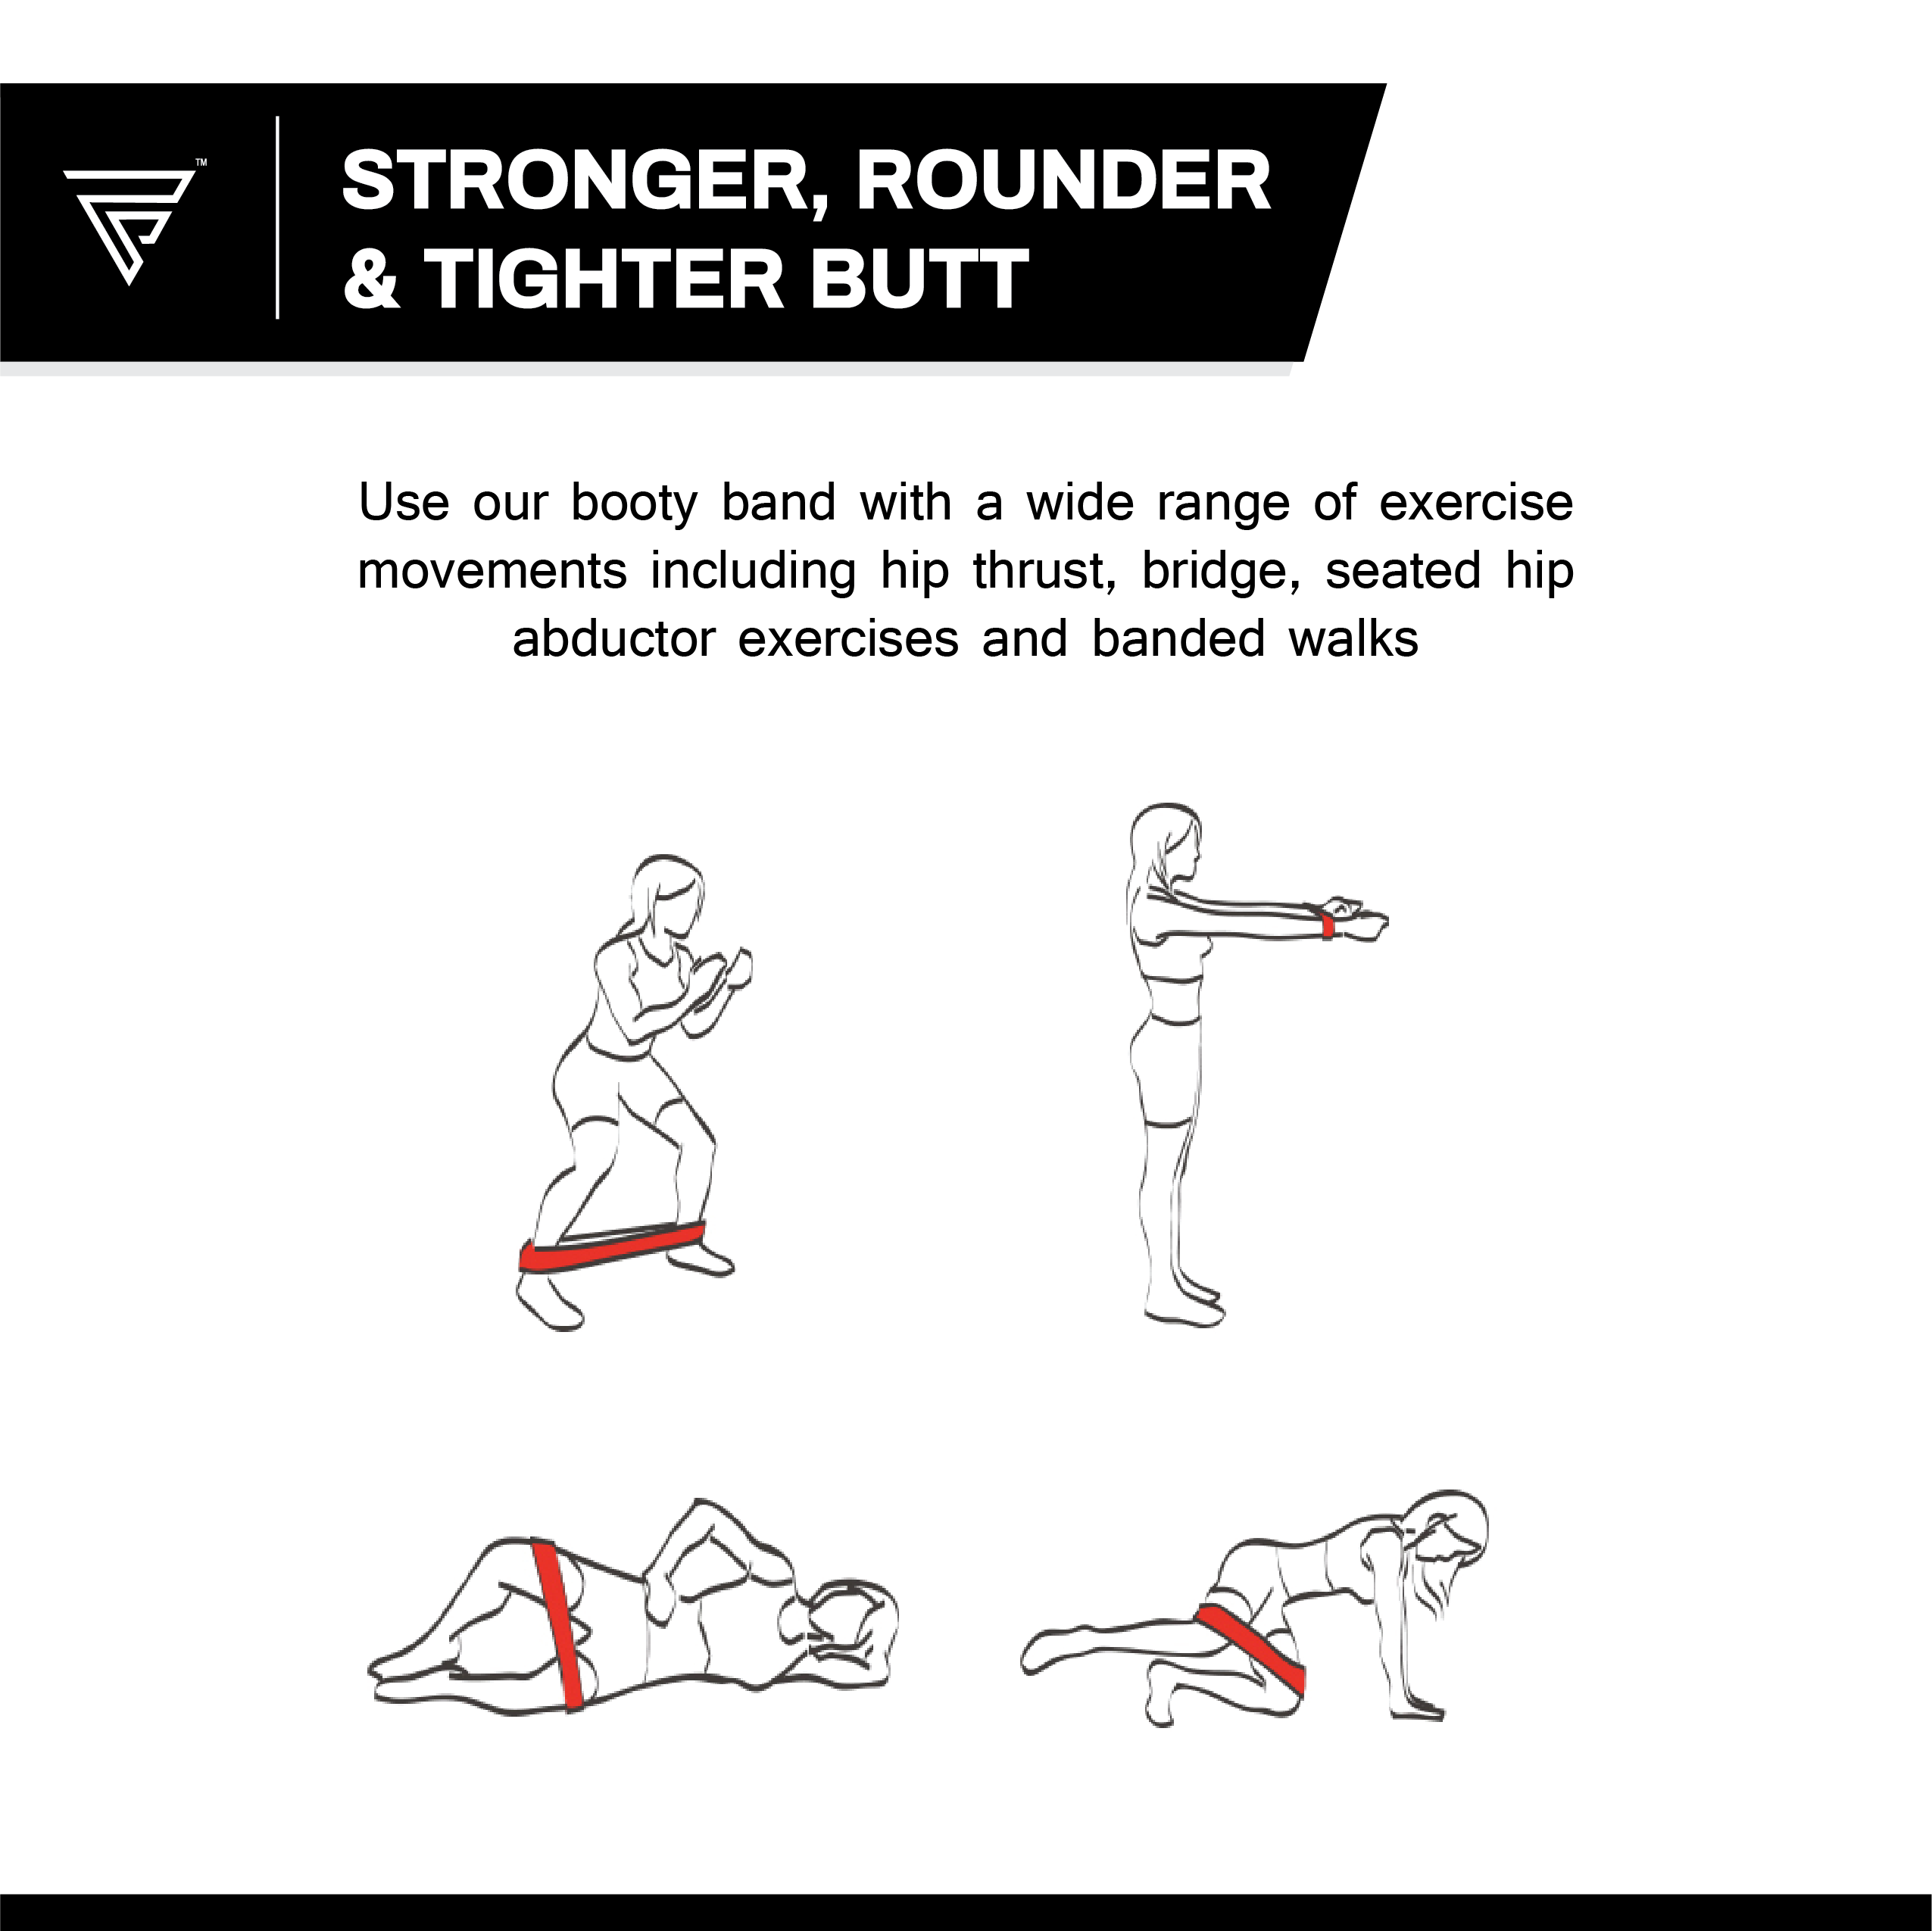 FITUALIZED Adjustable Booty Band for Stronger, Rounder & Tighter Hip - Multiple Resistance for More Results - Comfy Fabric Non - Slip for Enjoyable Glutes Workout, Exercise & Training at Home or Gym - aka Hip Circles & Glute Loops